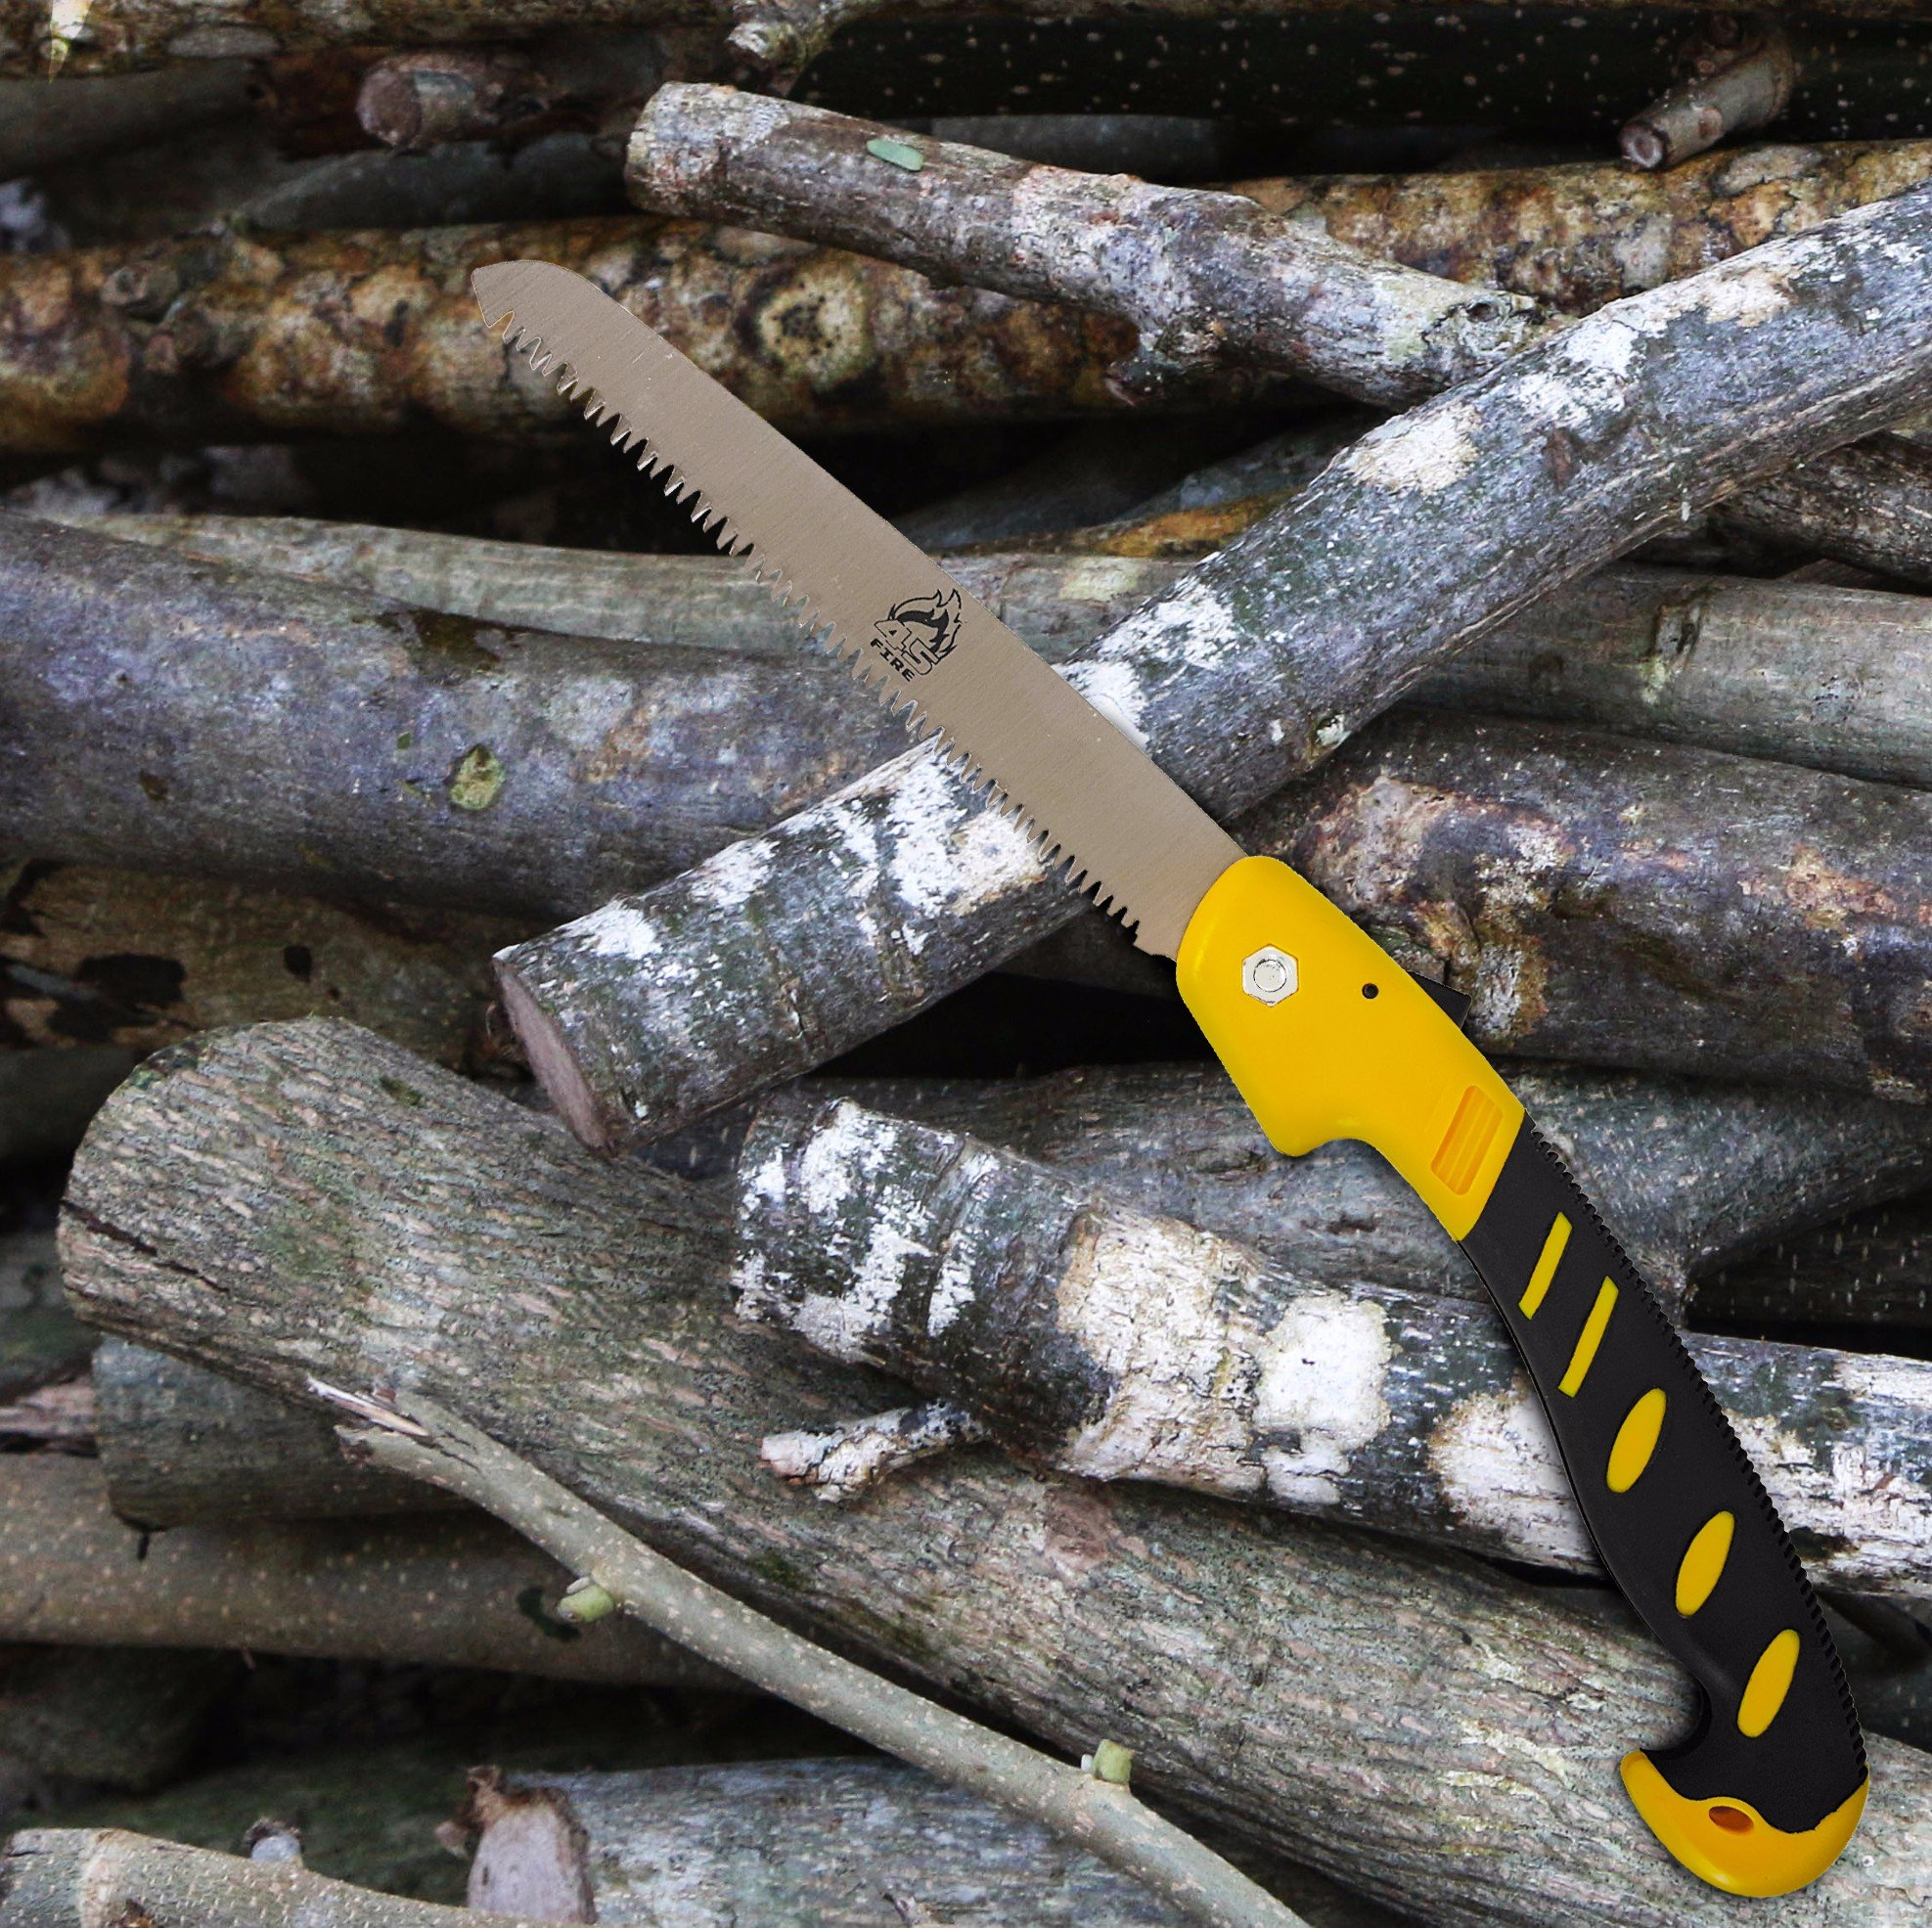 """Hand Saw Camping Accessories Drywall Tools Pruning Woodworking Gardening Hunting Hiking Small Folding Tool Tree Survival Emergency 